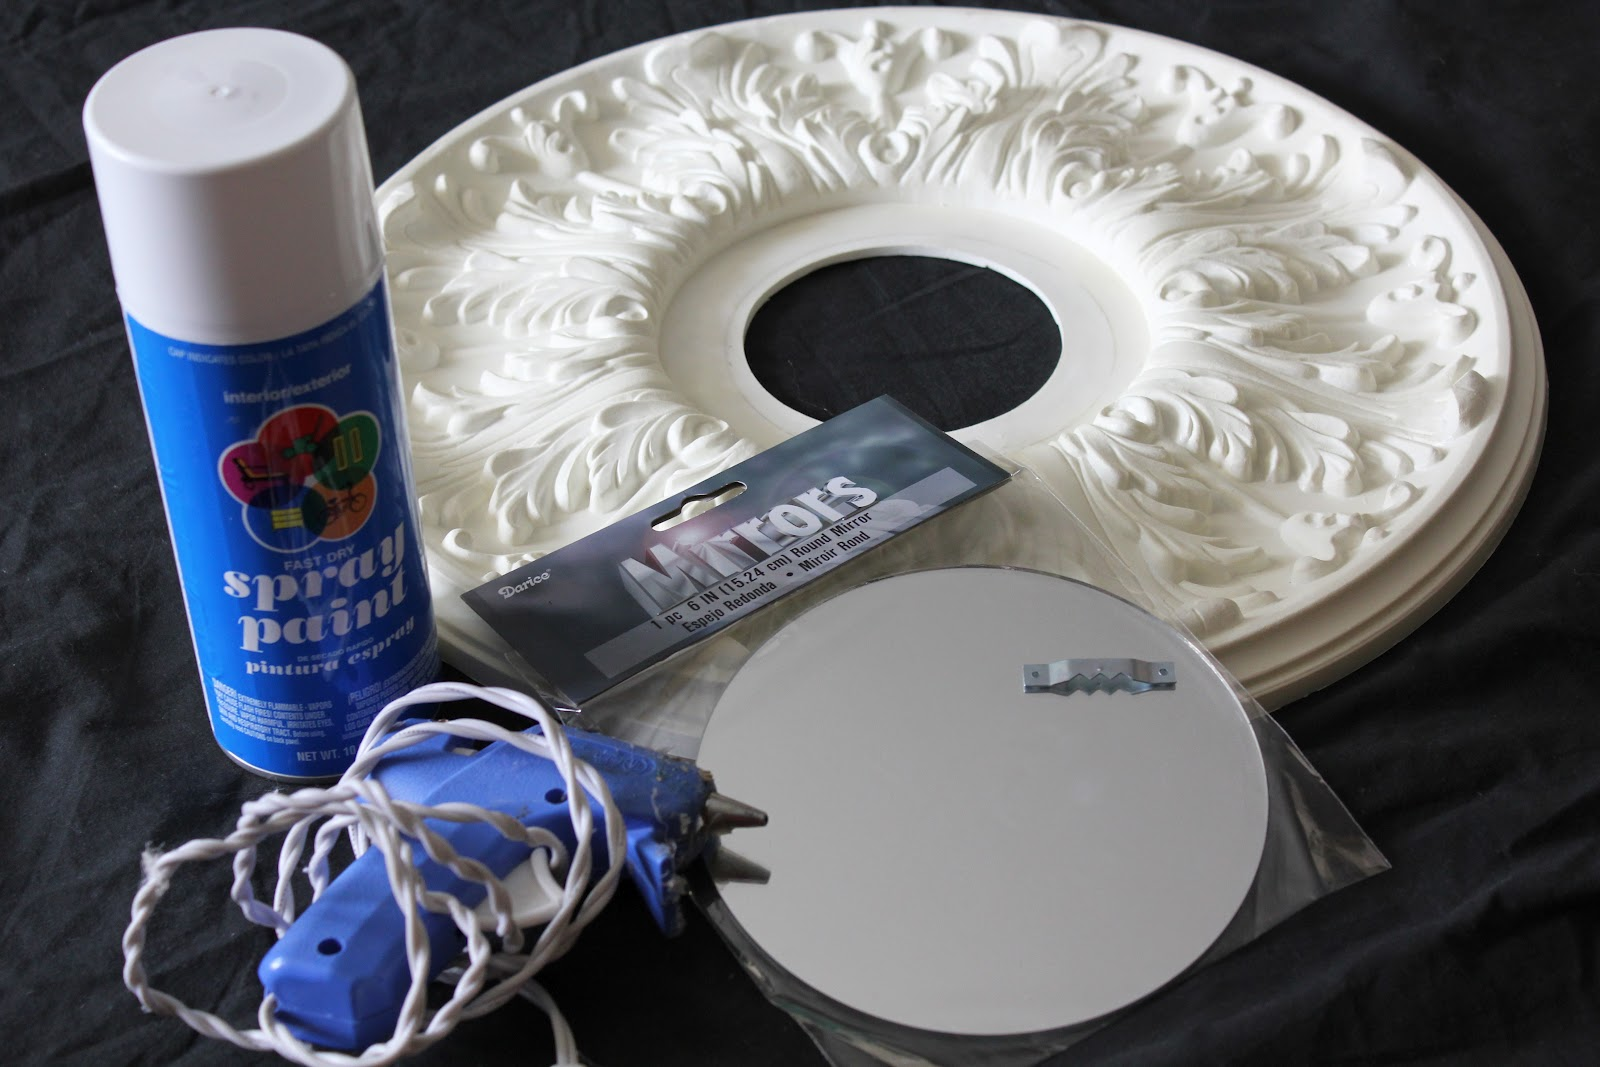 spray paint glue gun 6 round mirror that can be bought at michaels. Black Bedroom Furniture Sets. Home Design Ideas